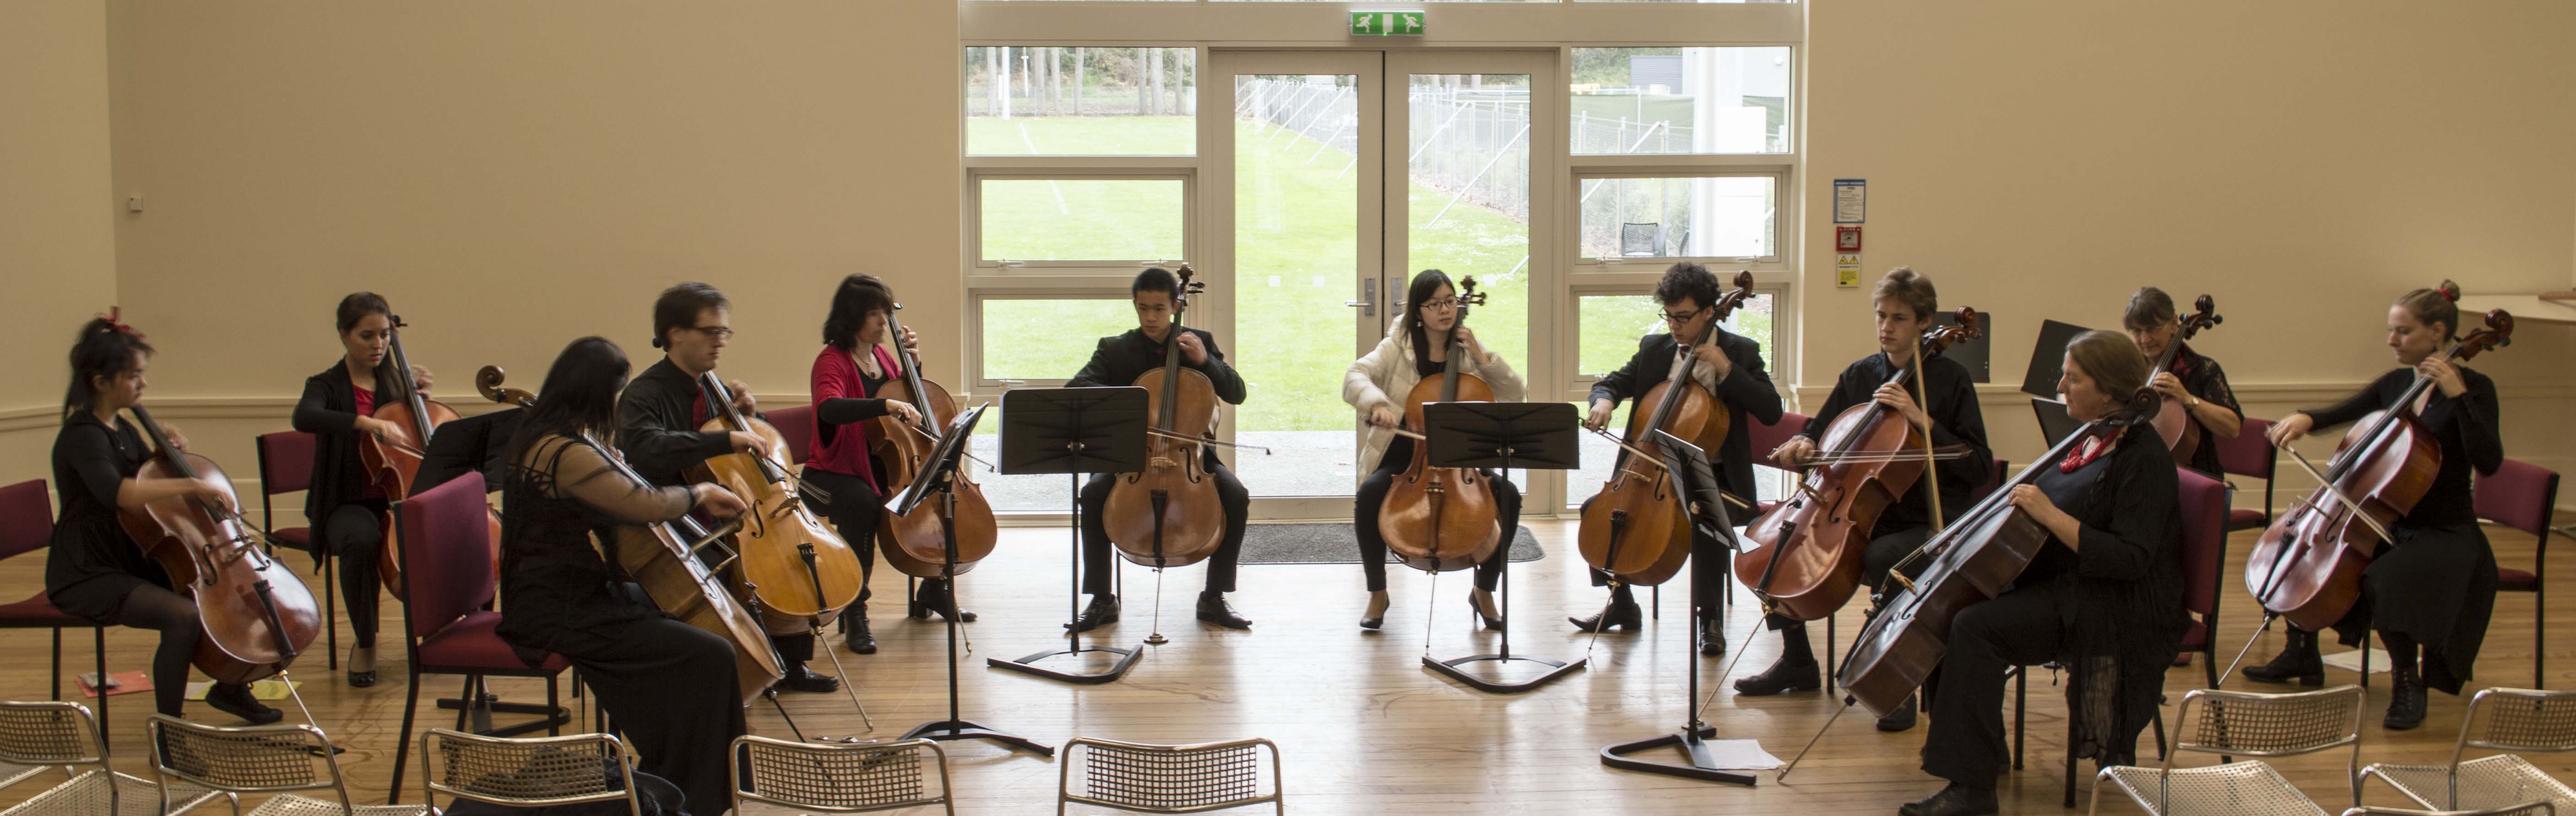 Cellist of Otago May 2014